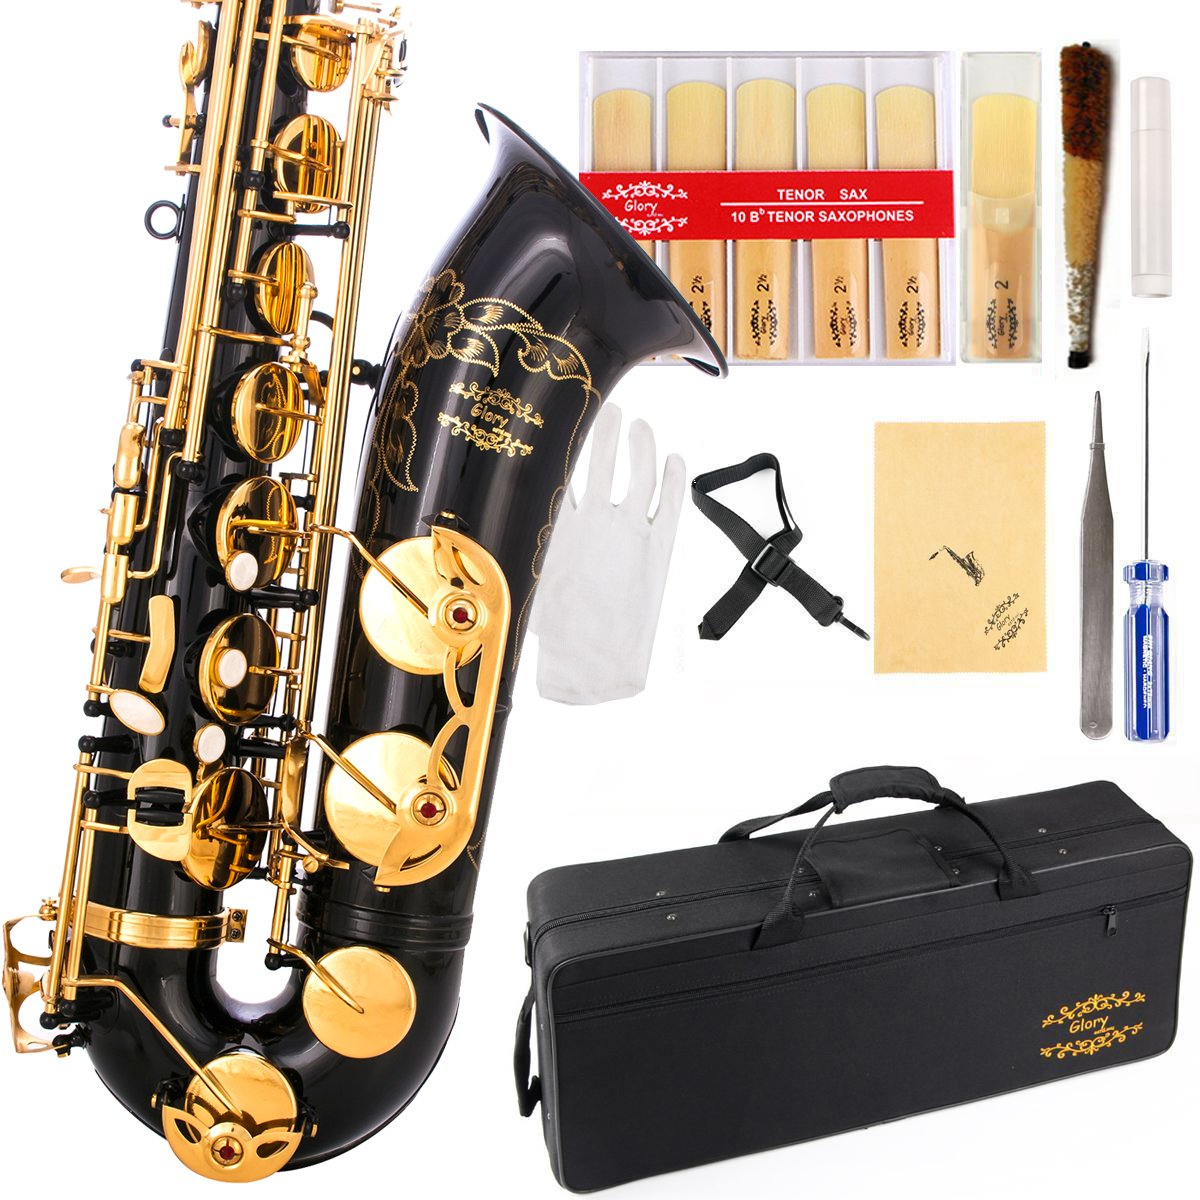 Glory Black/Gold B Flat Tenor Saxophone with Case,10pc Reeds,Mouth Piece,Screw Driver,Nipper. A pair of gloves, Soft Cleaning Cloth.